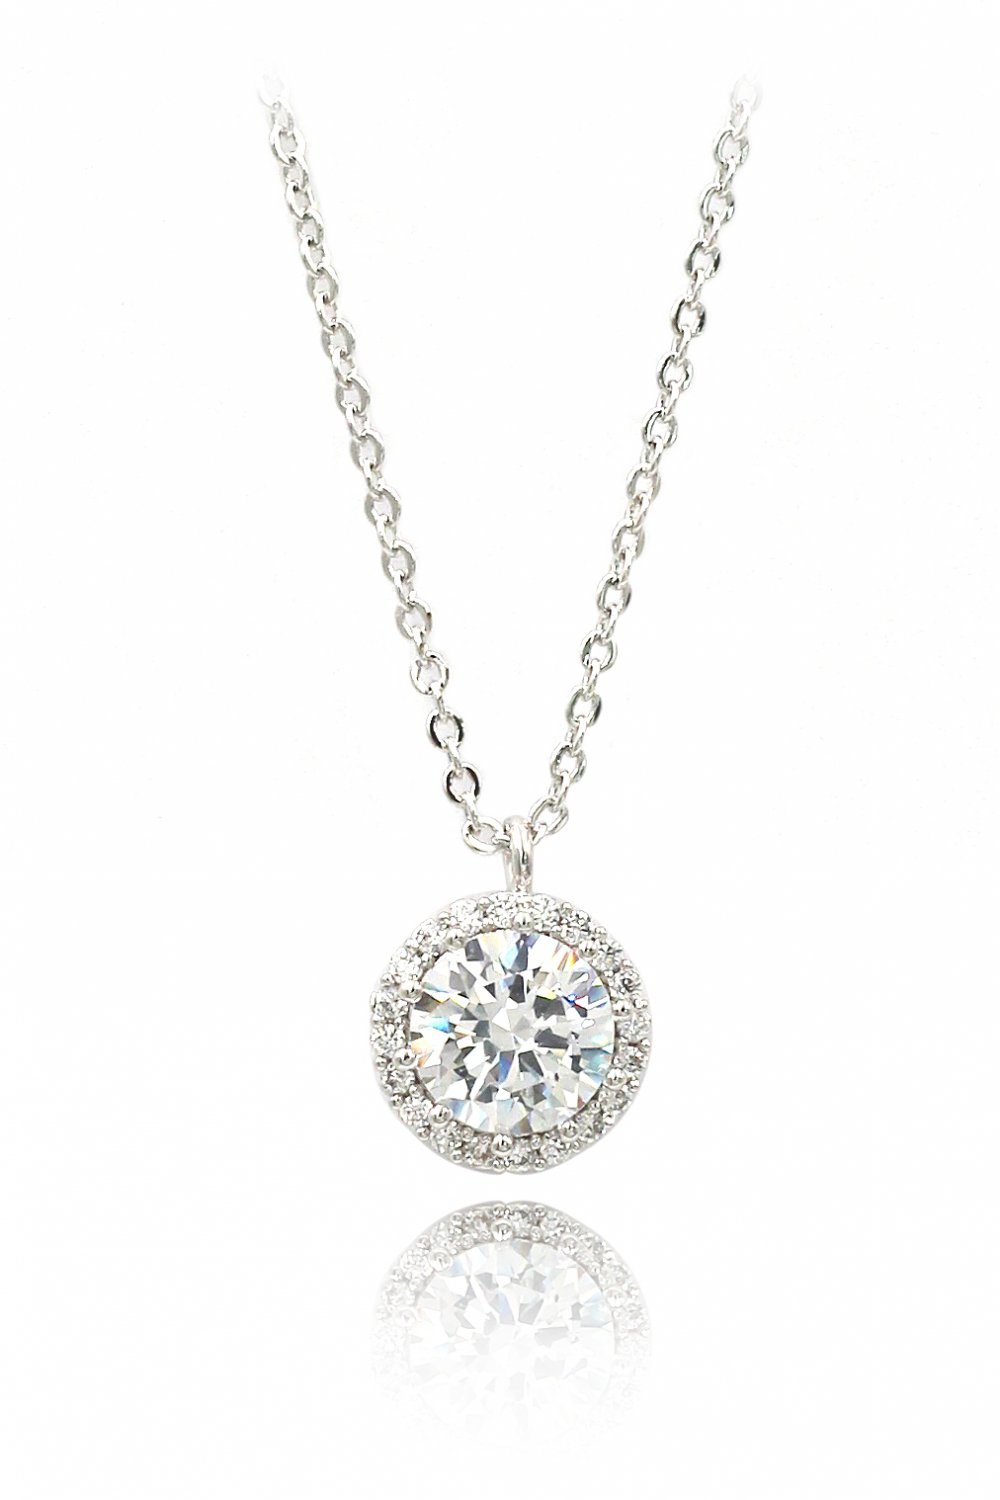 Flashing crystal silver necklace